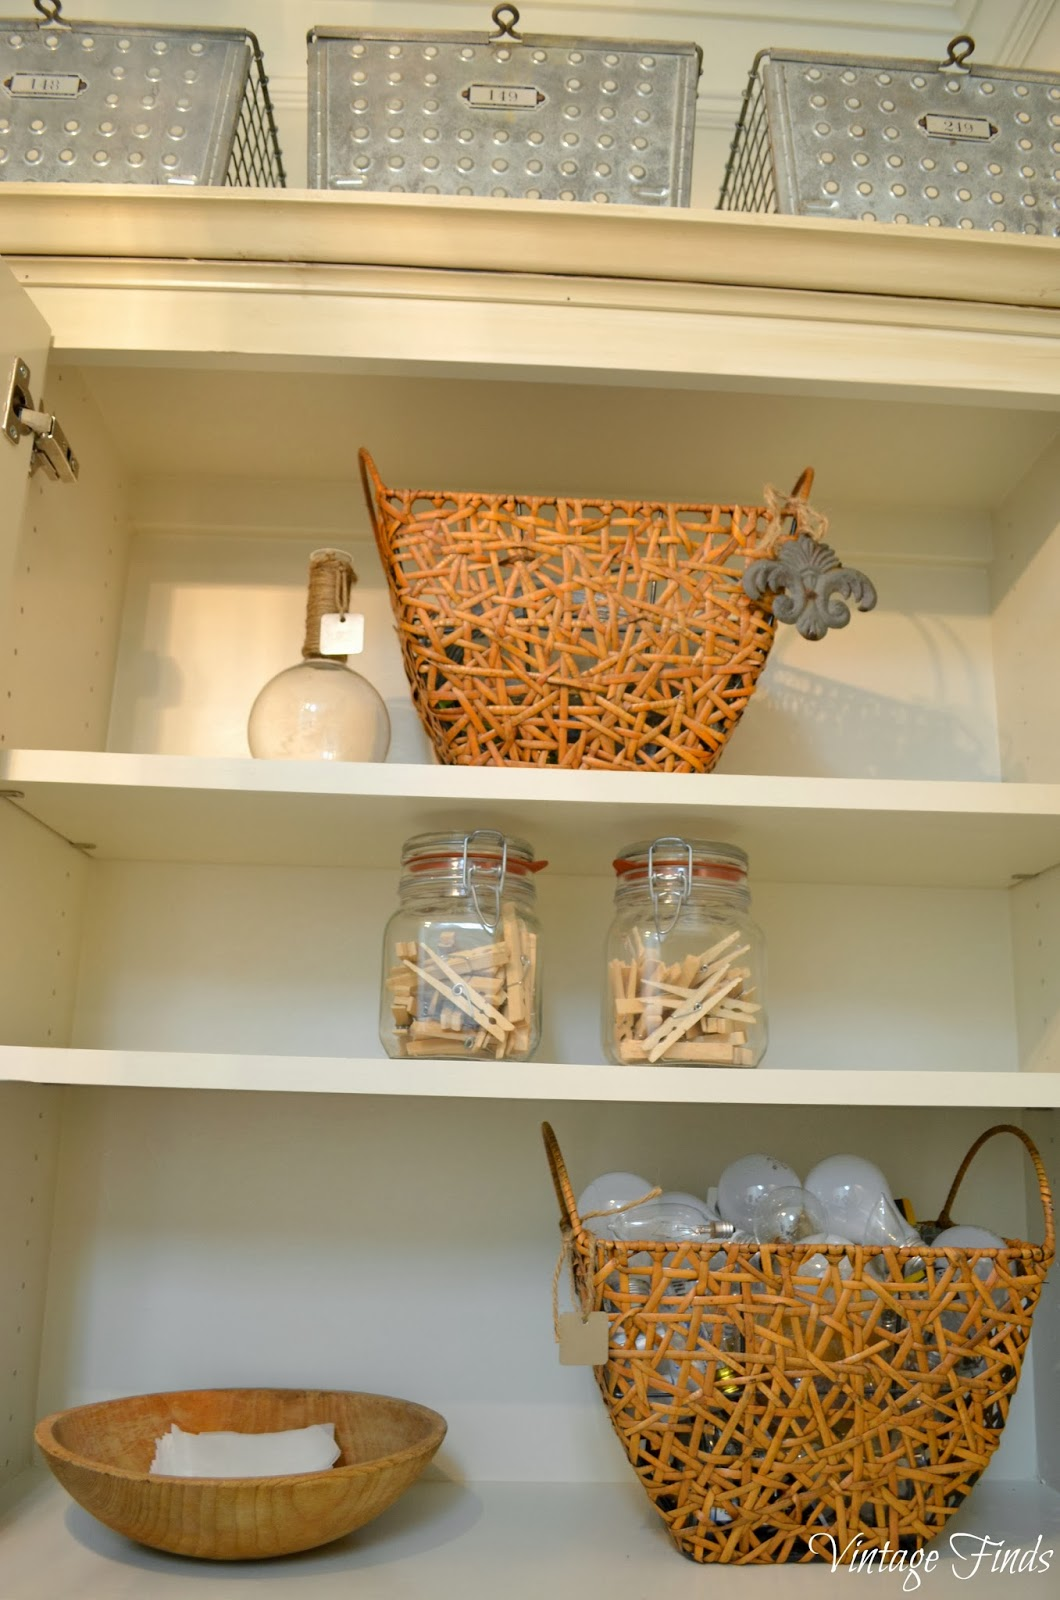 Vintage Finds New House Laundry Room